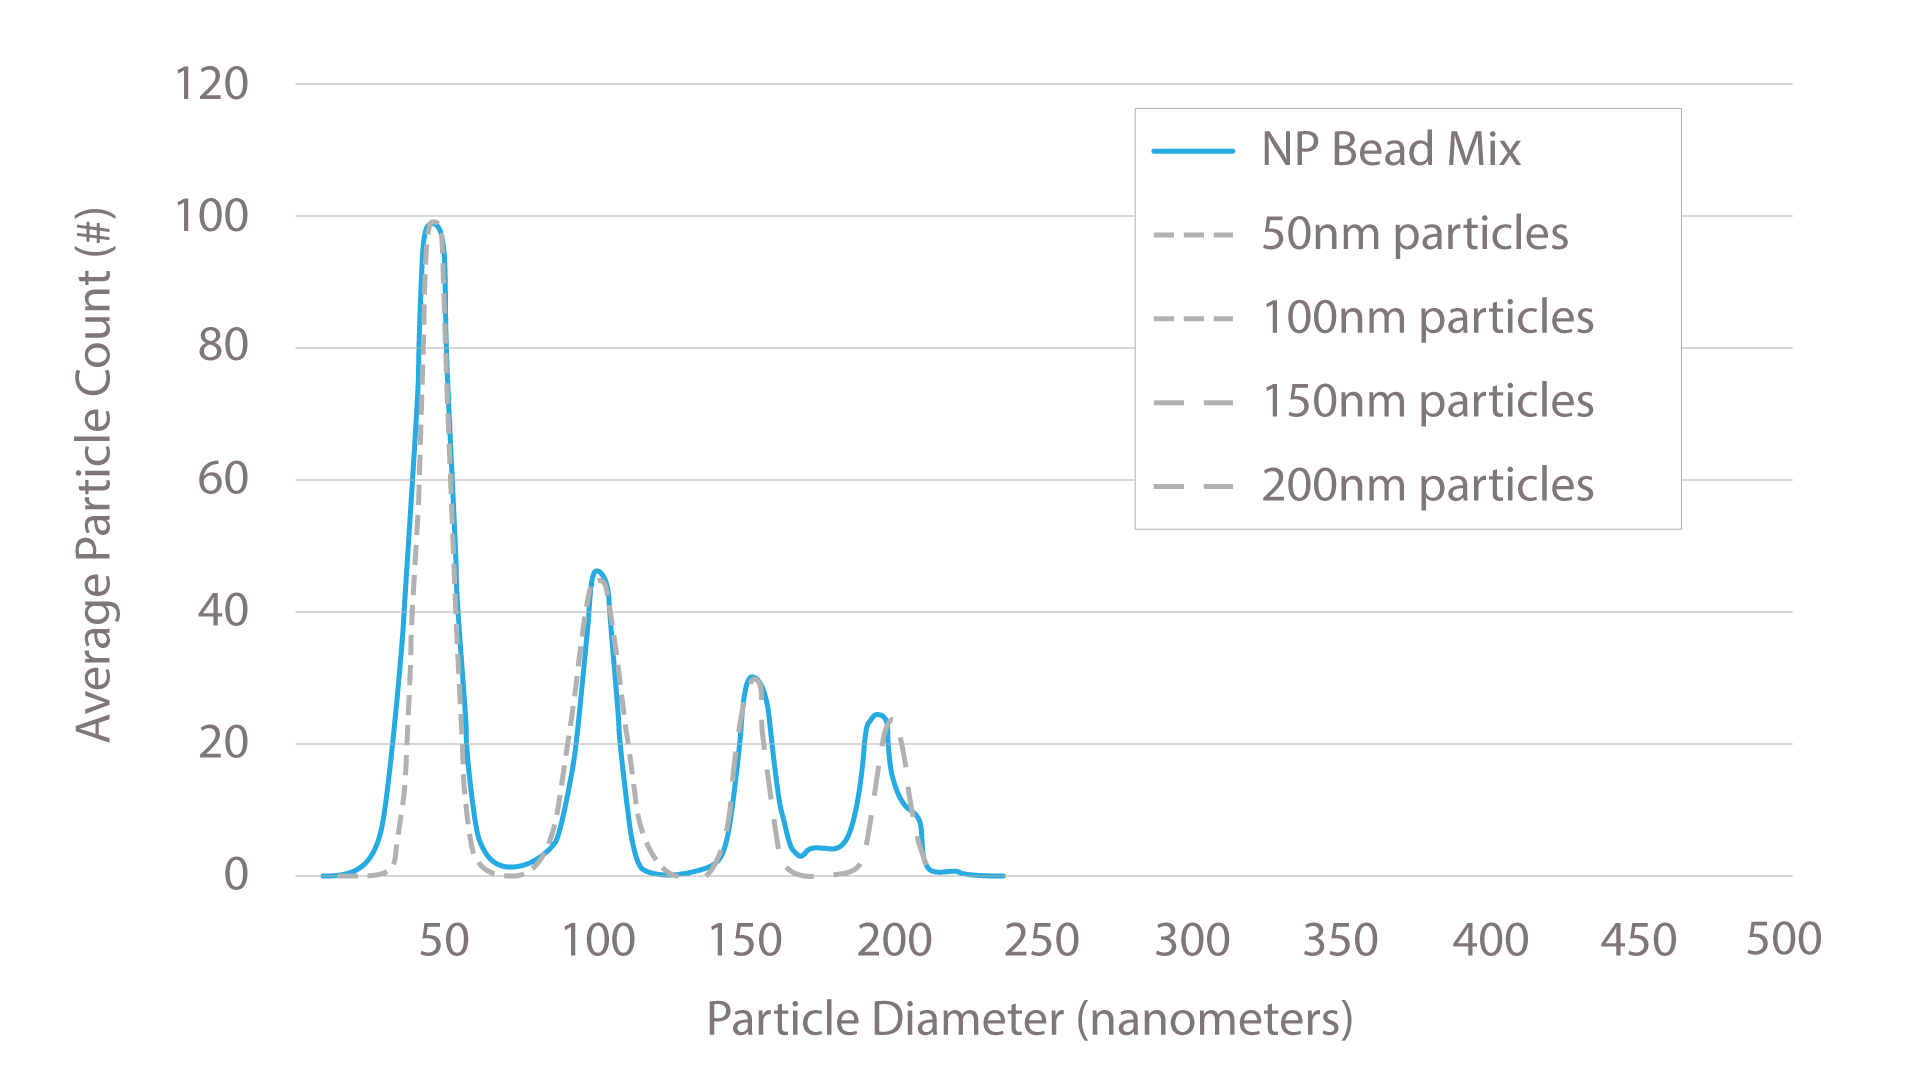 Mix of 50,100,150,200nm beads versus manufacturer's quoted SD of beads. Captured using a single acquisition setting and demonstrating the extreme peak-to-peak resolving capability of the ExoView ™ instrument.